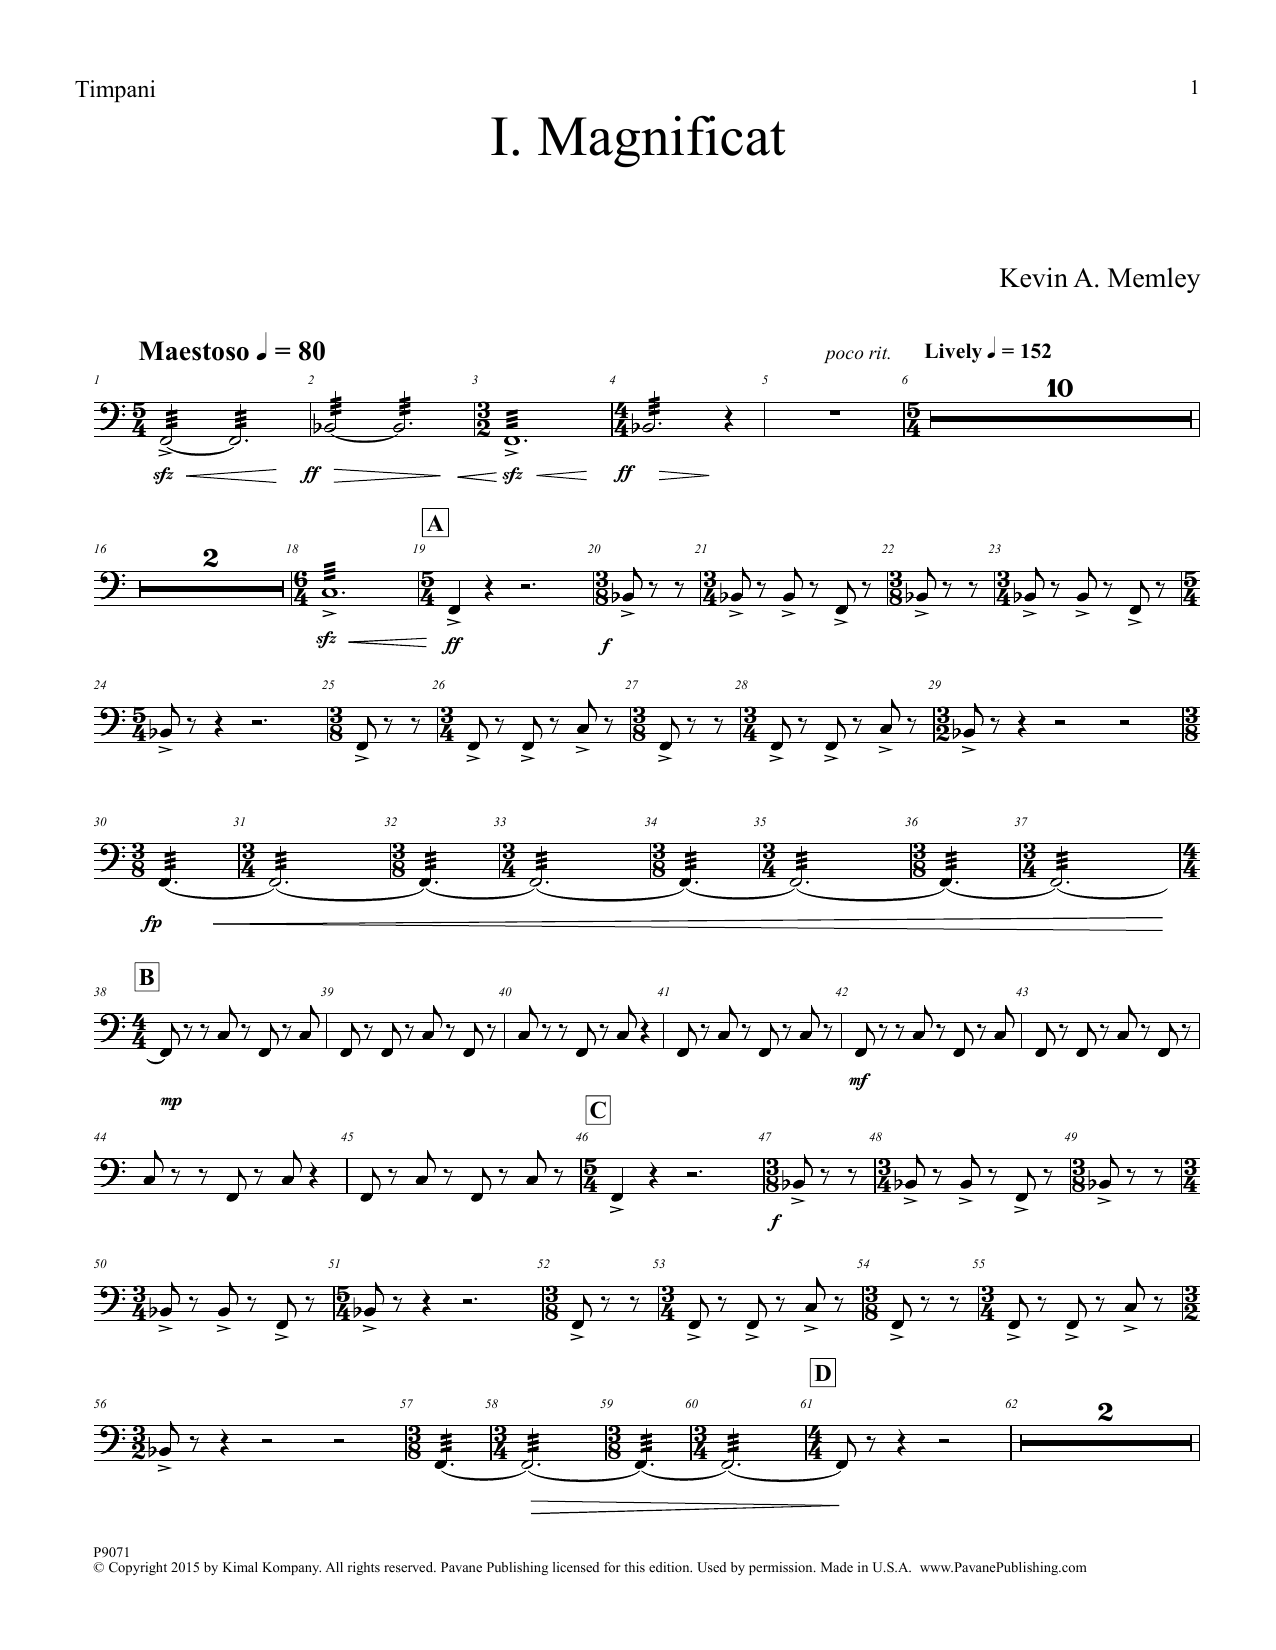 Kevin A. Memley Magnificat - Timpani sheet music notes and chords. Download Printable PDF.